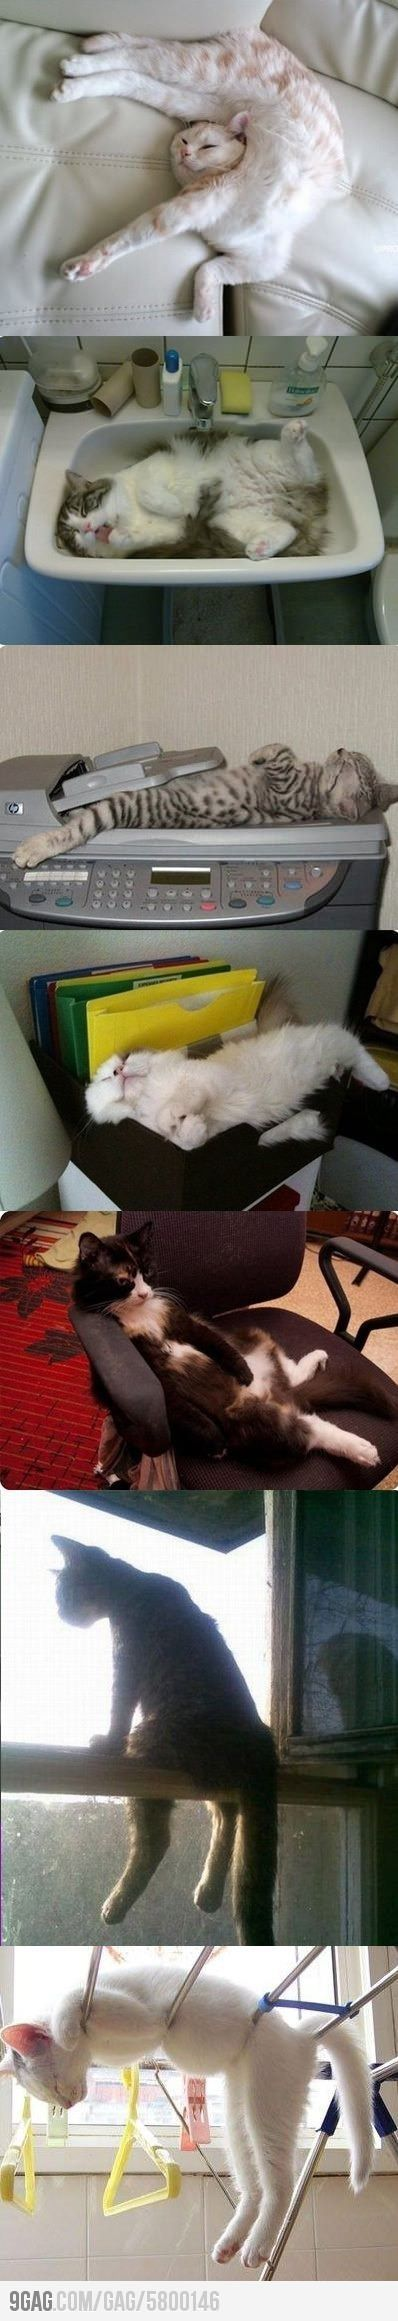 Cats-are-funny8 Cats-are-funny8